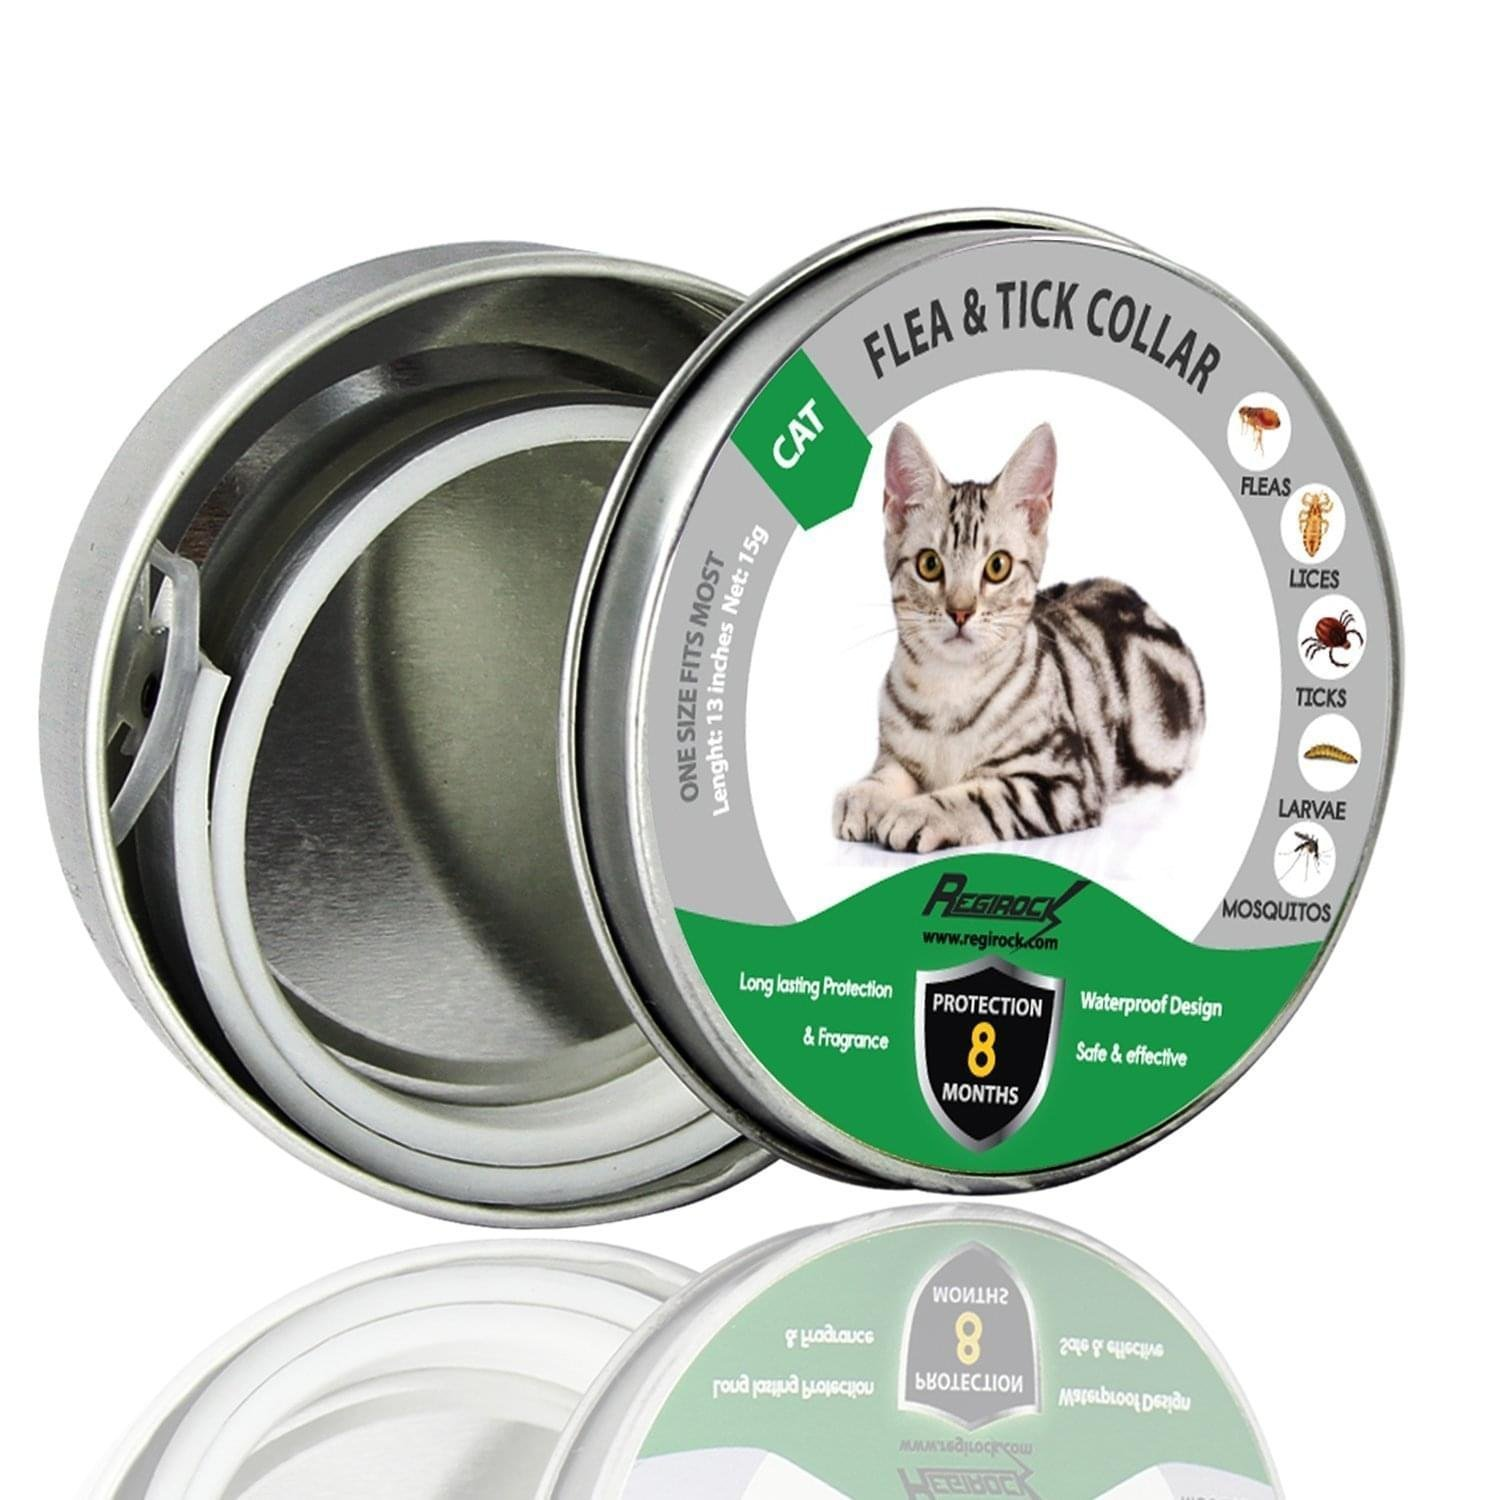 REGIROCK Flea and Tick Collar for Cats